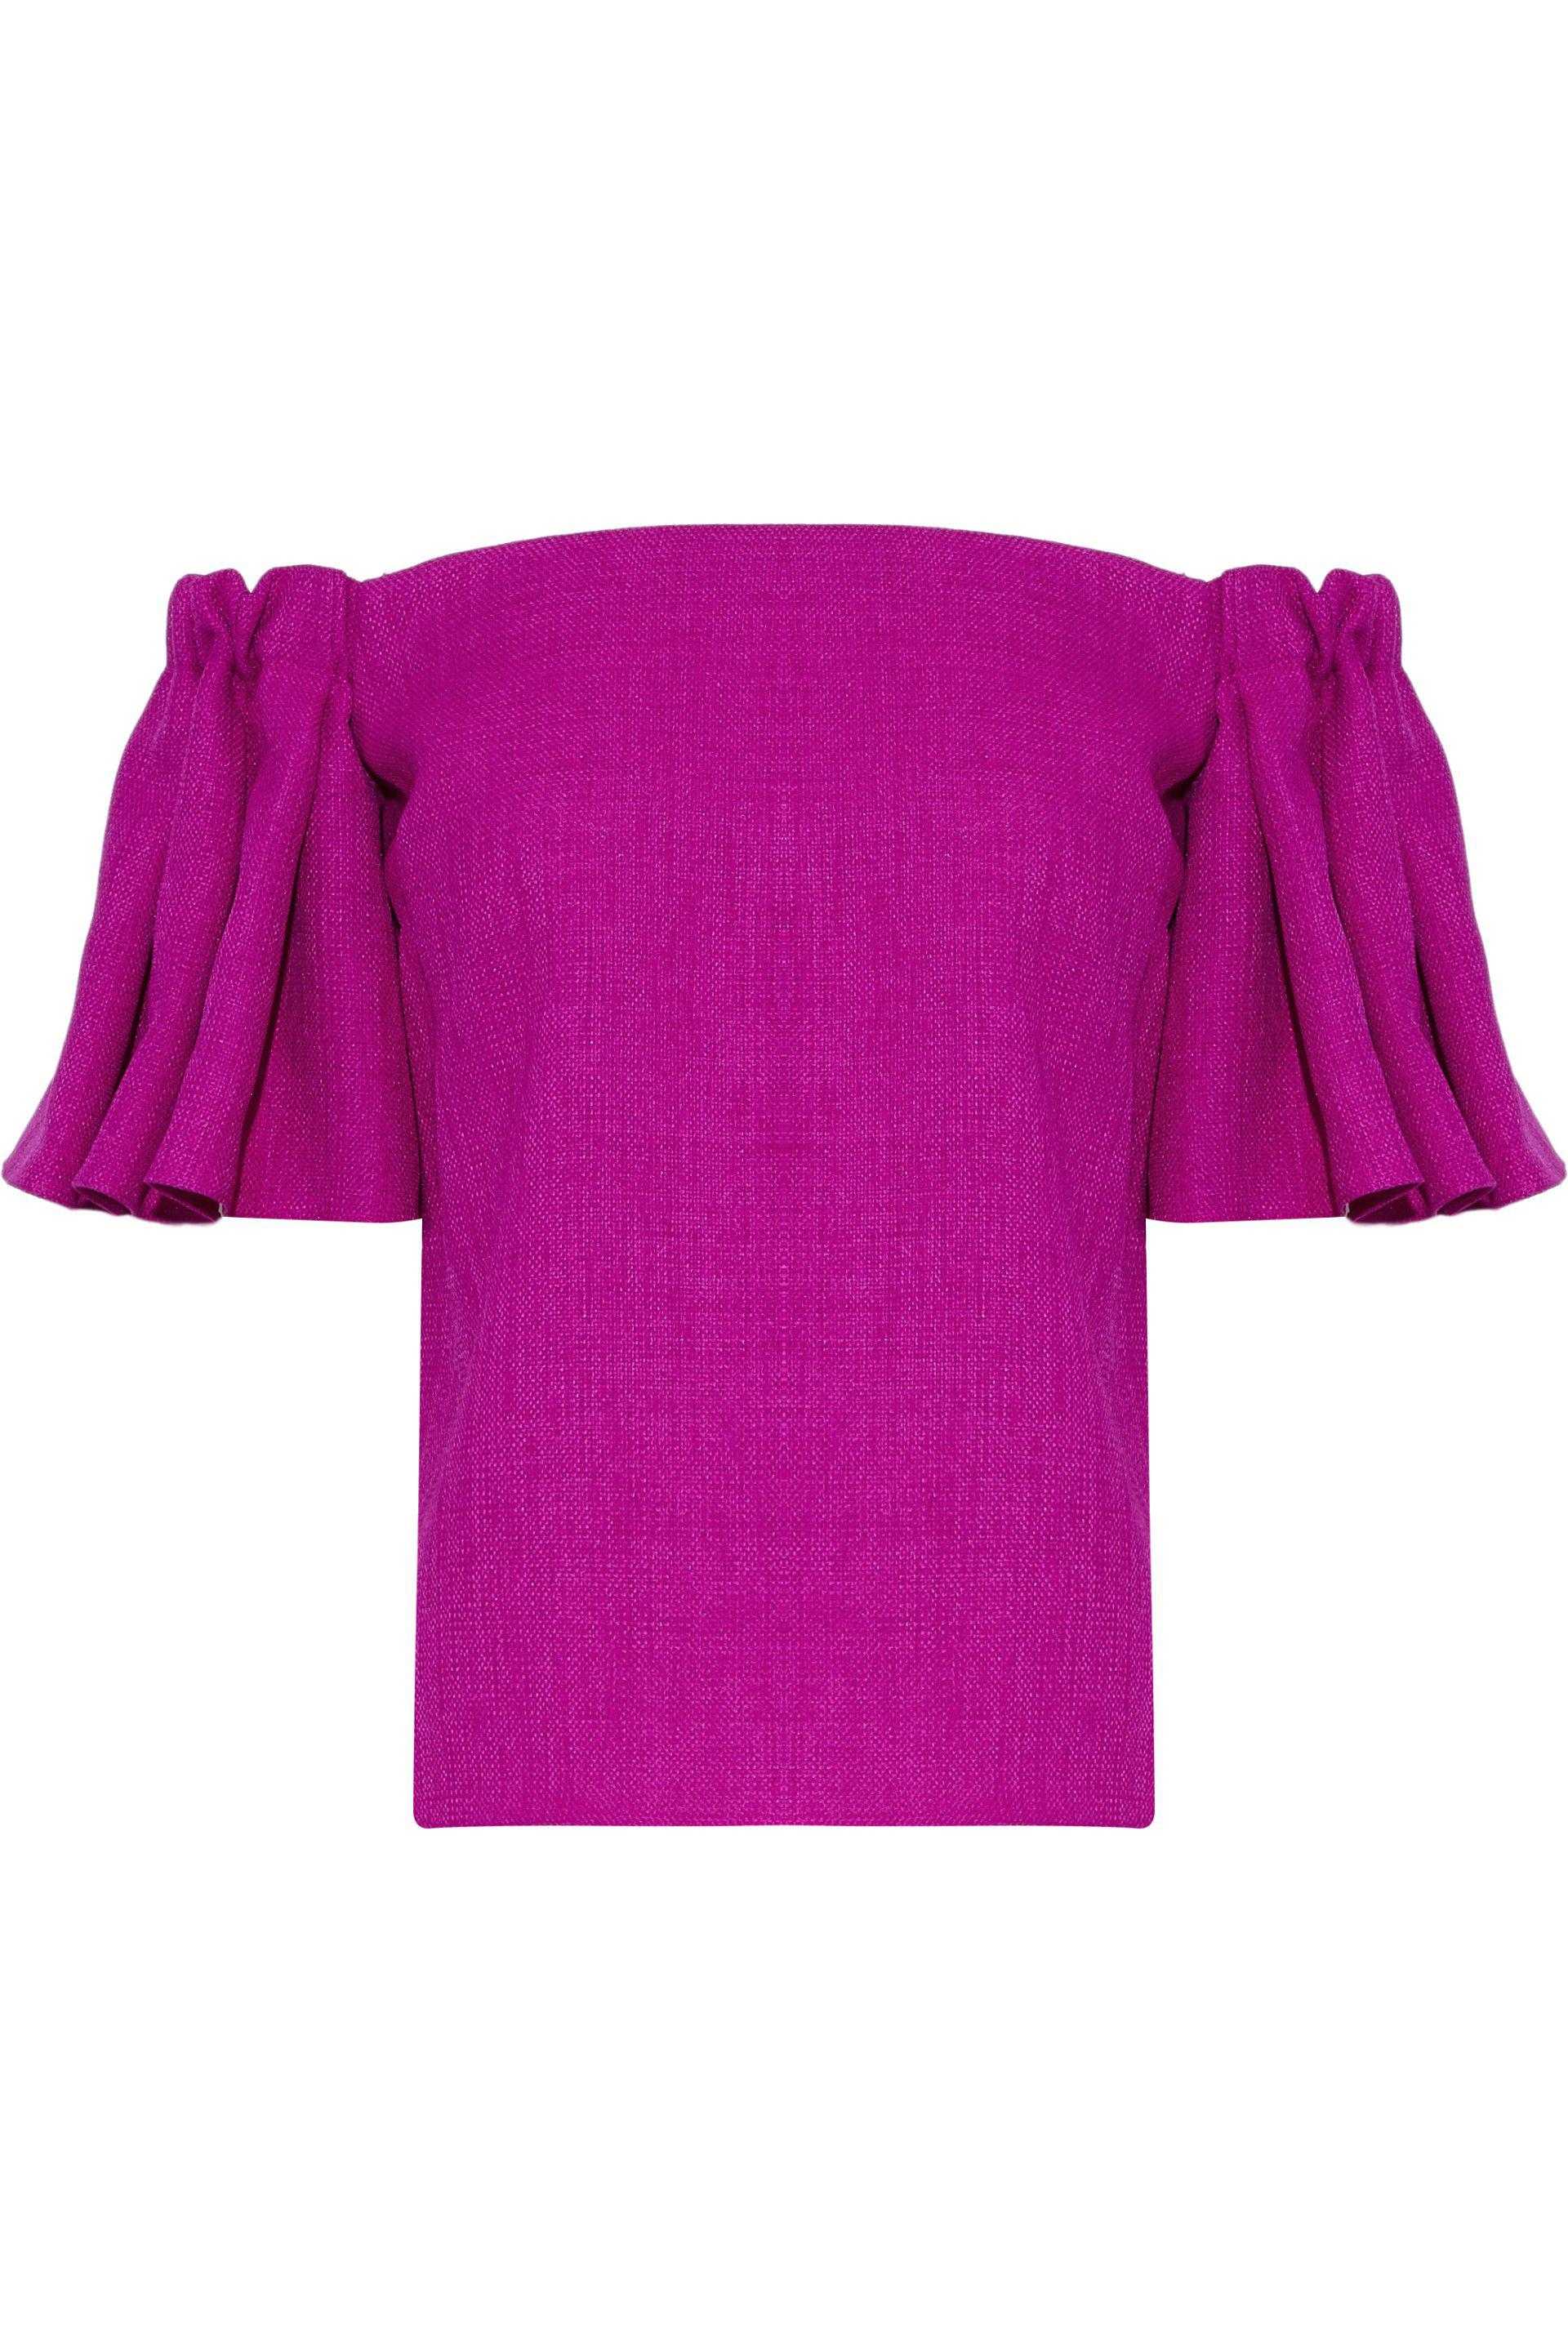 Comfortable Sale Online Free Shipping With Paypal Badgley Mischka Woman Off-the-shoulder Ruffled Woven Top Magenta Size XL Badgley Mischka Sale Official Site Free Shipping Footlocker t2RG1GlBa